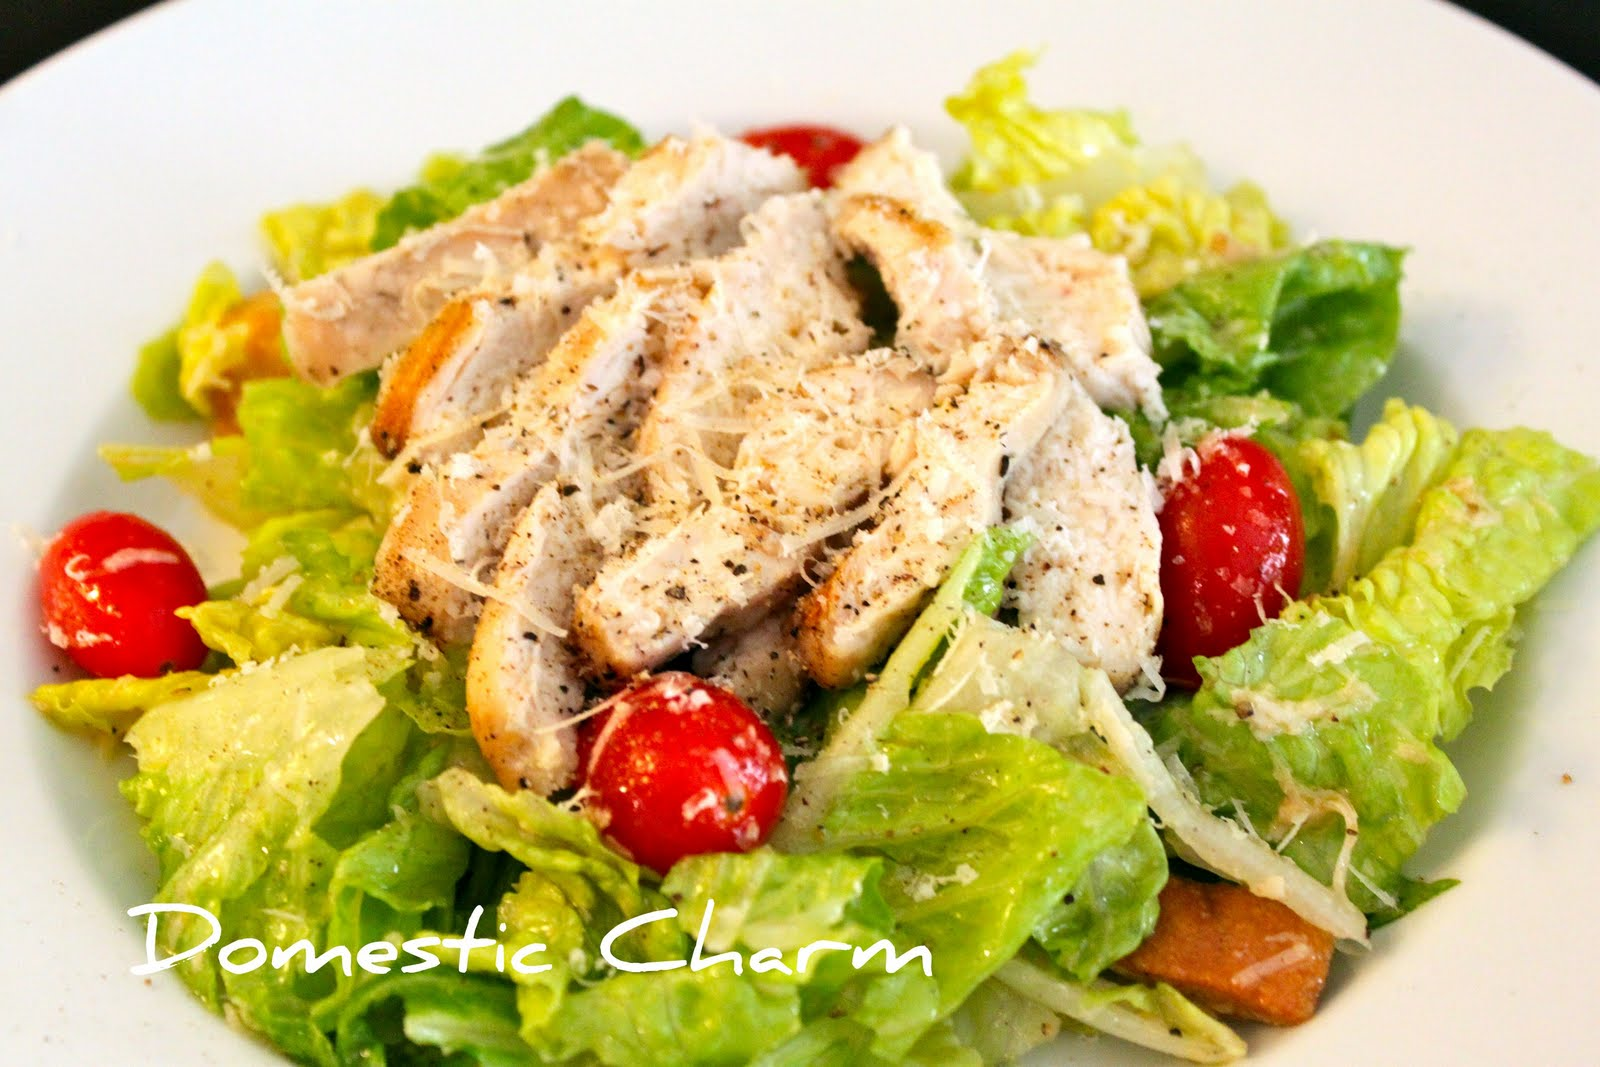 Domestic Charm: Chicken Caesar Salad